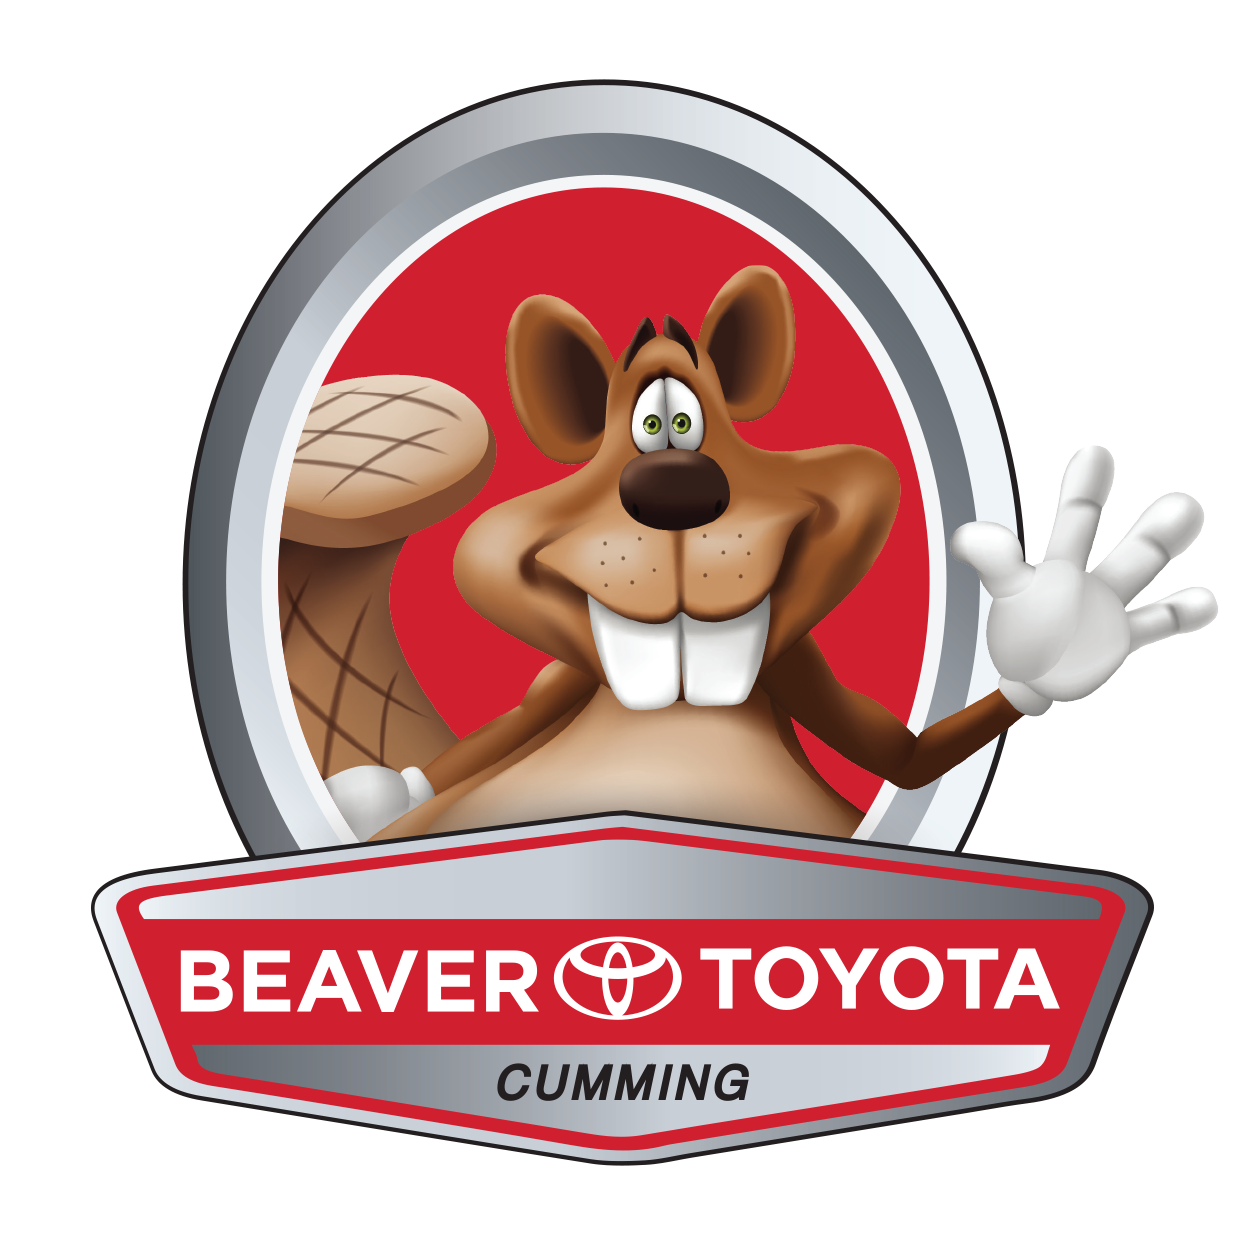 Beaver Toyota of Cumming